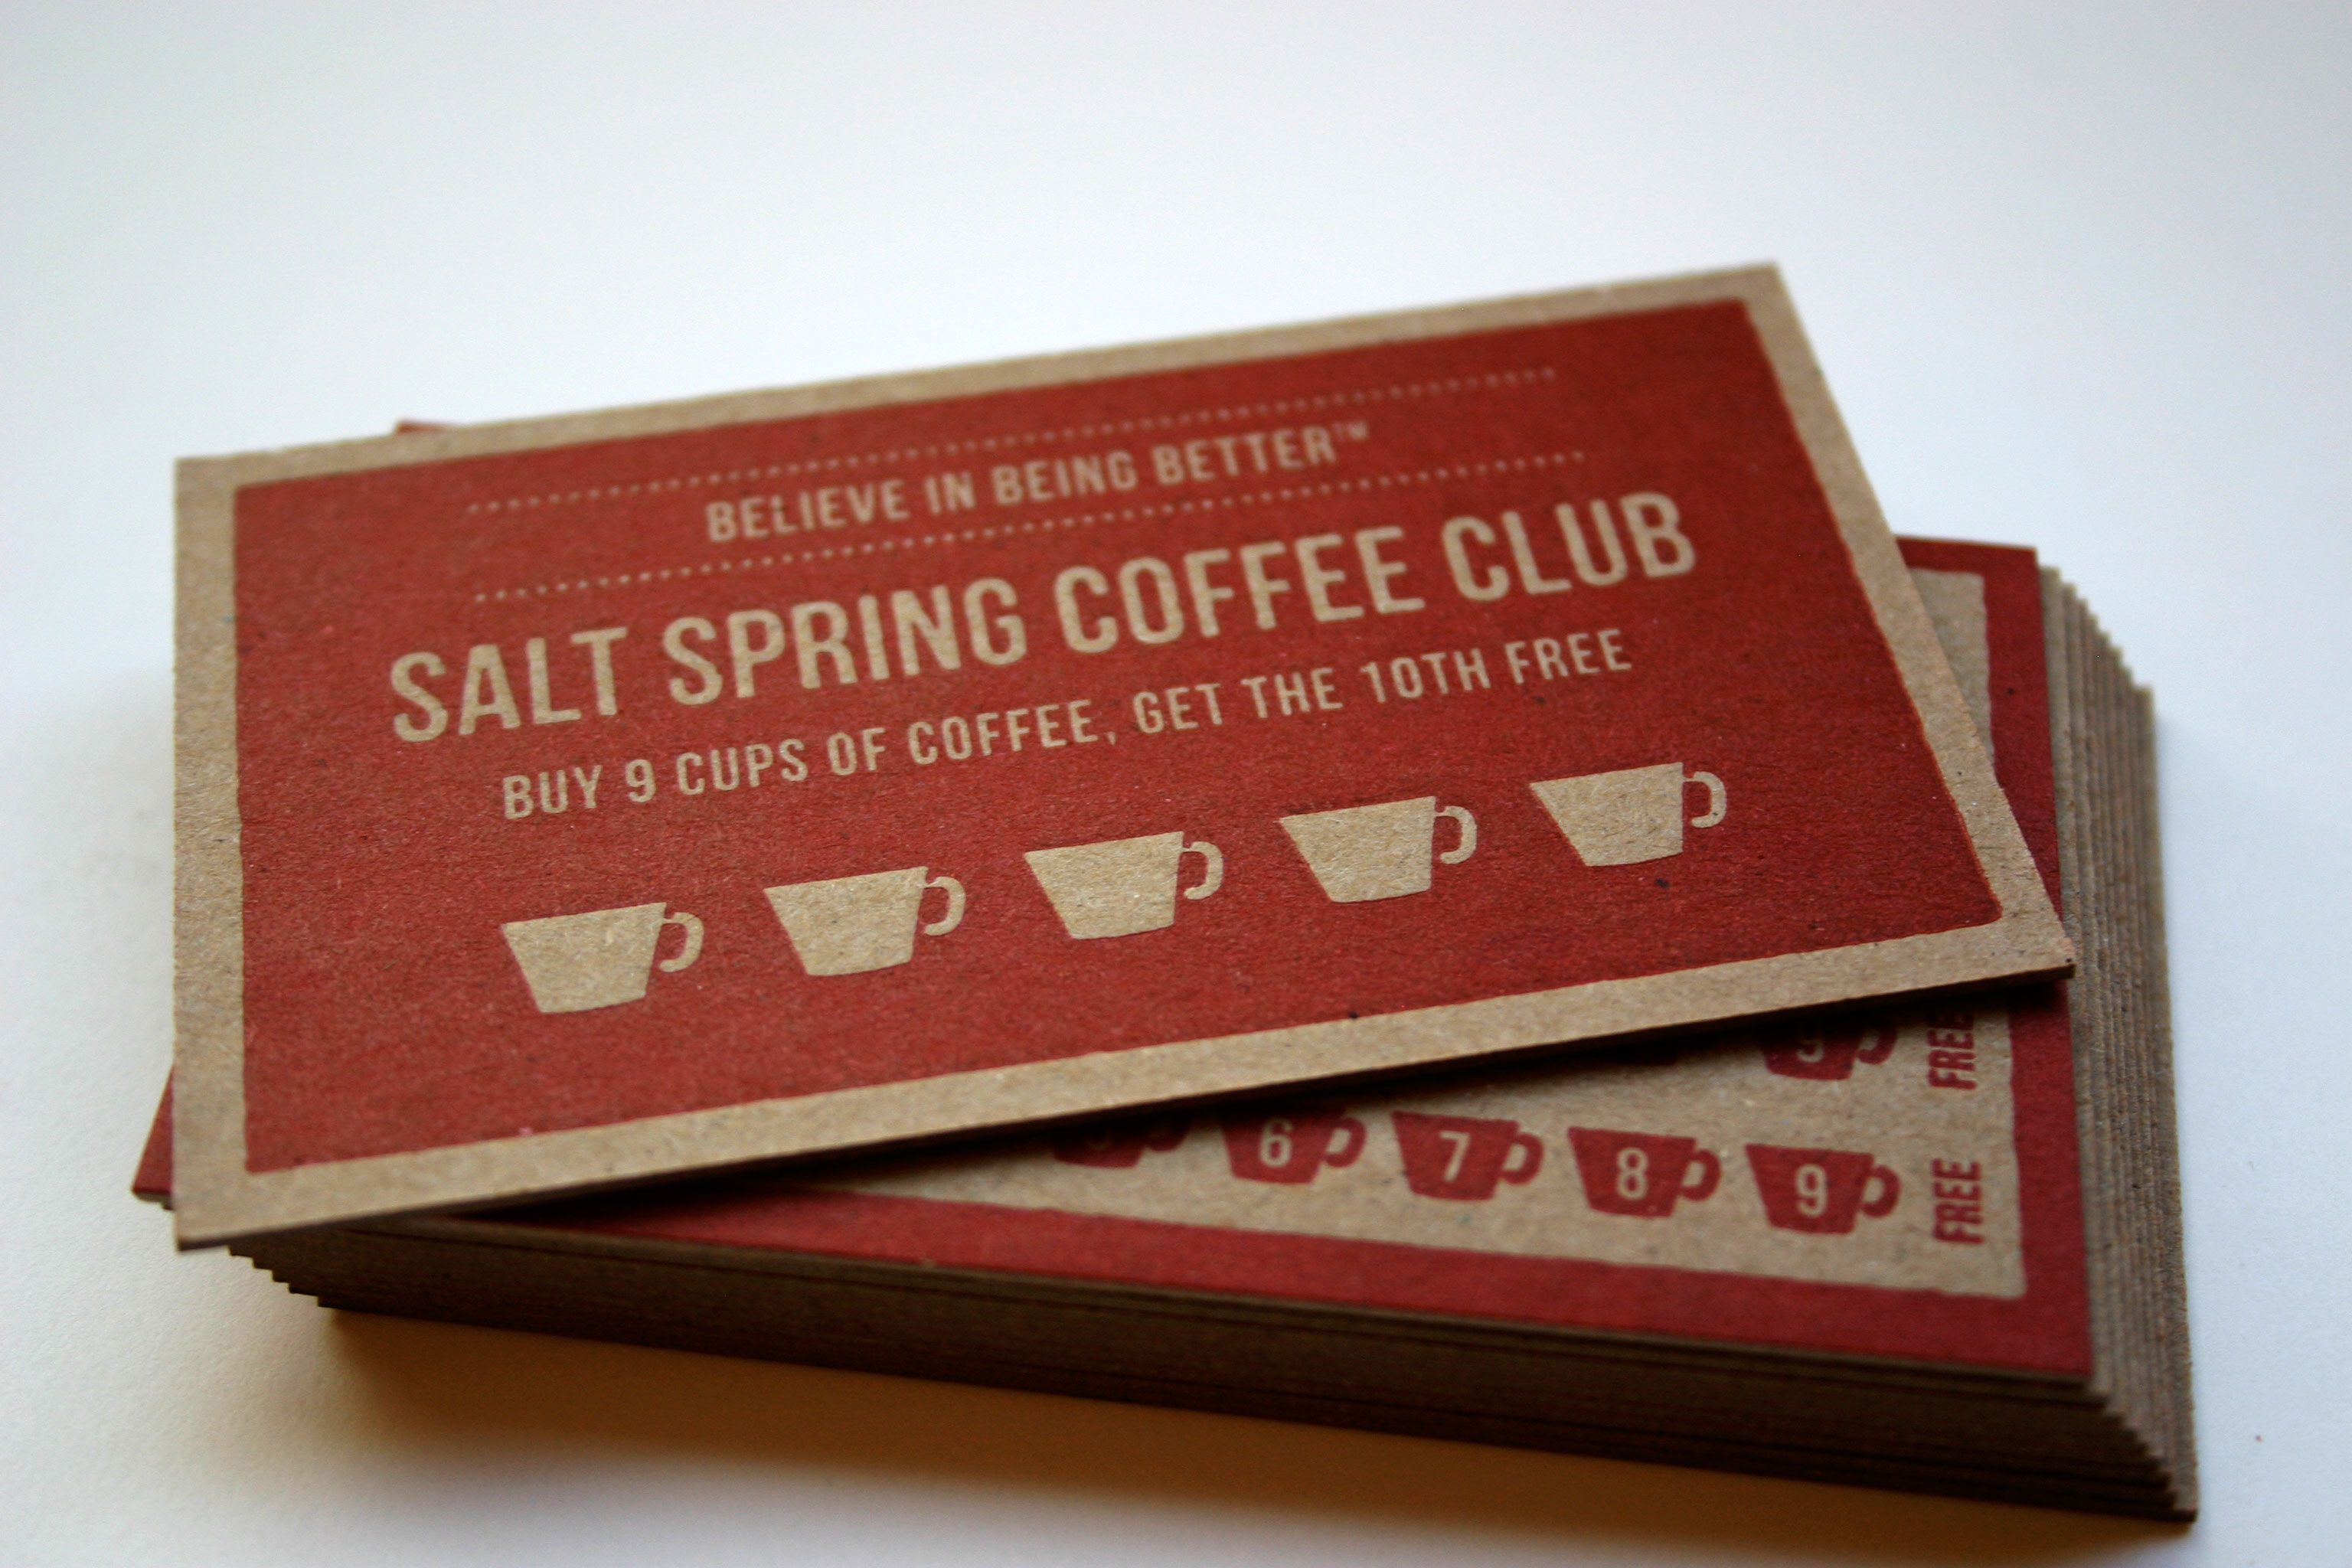 201209_Salstspring Loyalty Cards_2 | Restaurant | Pinterest ...